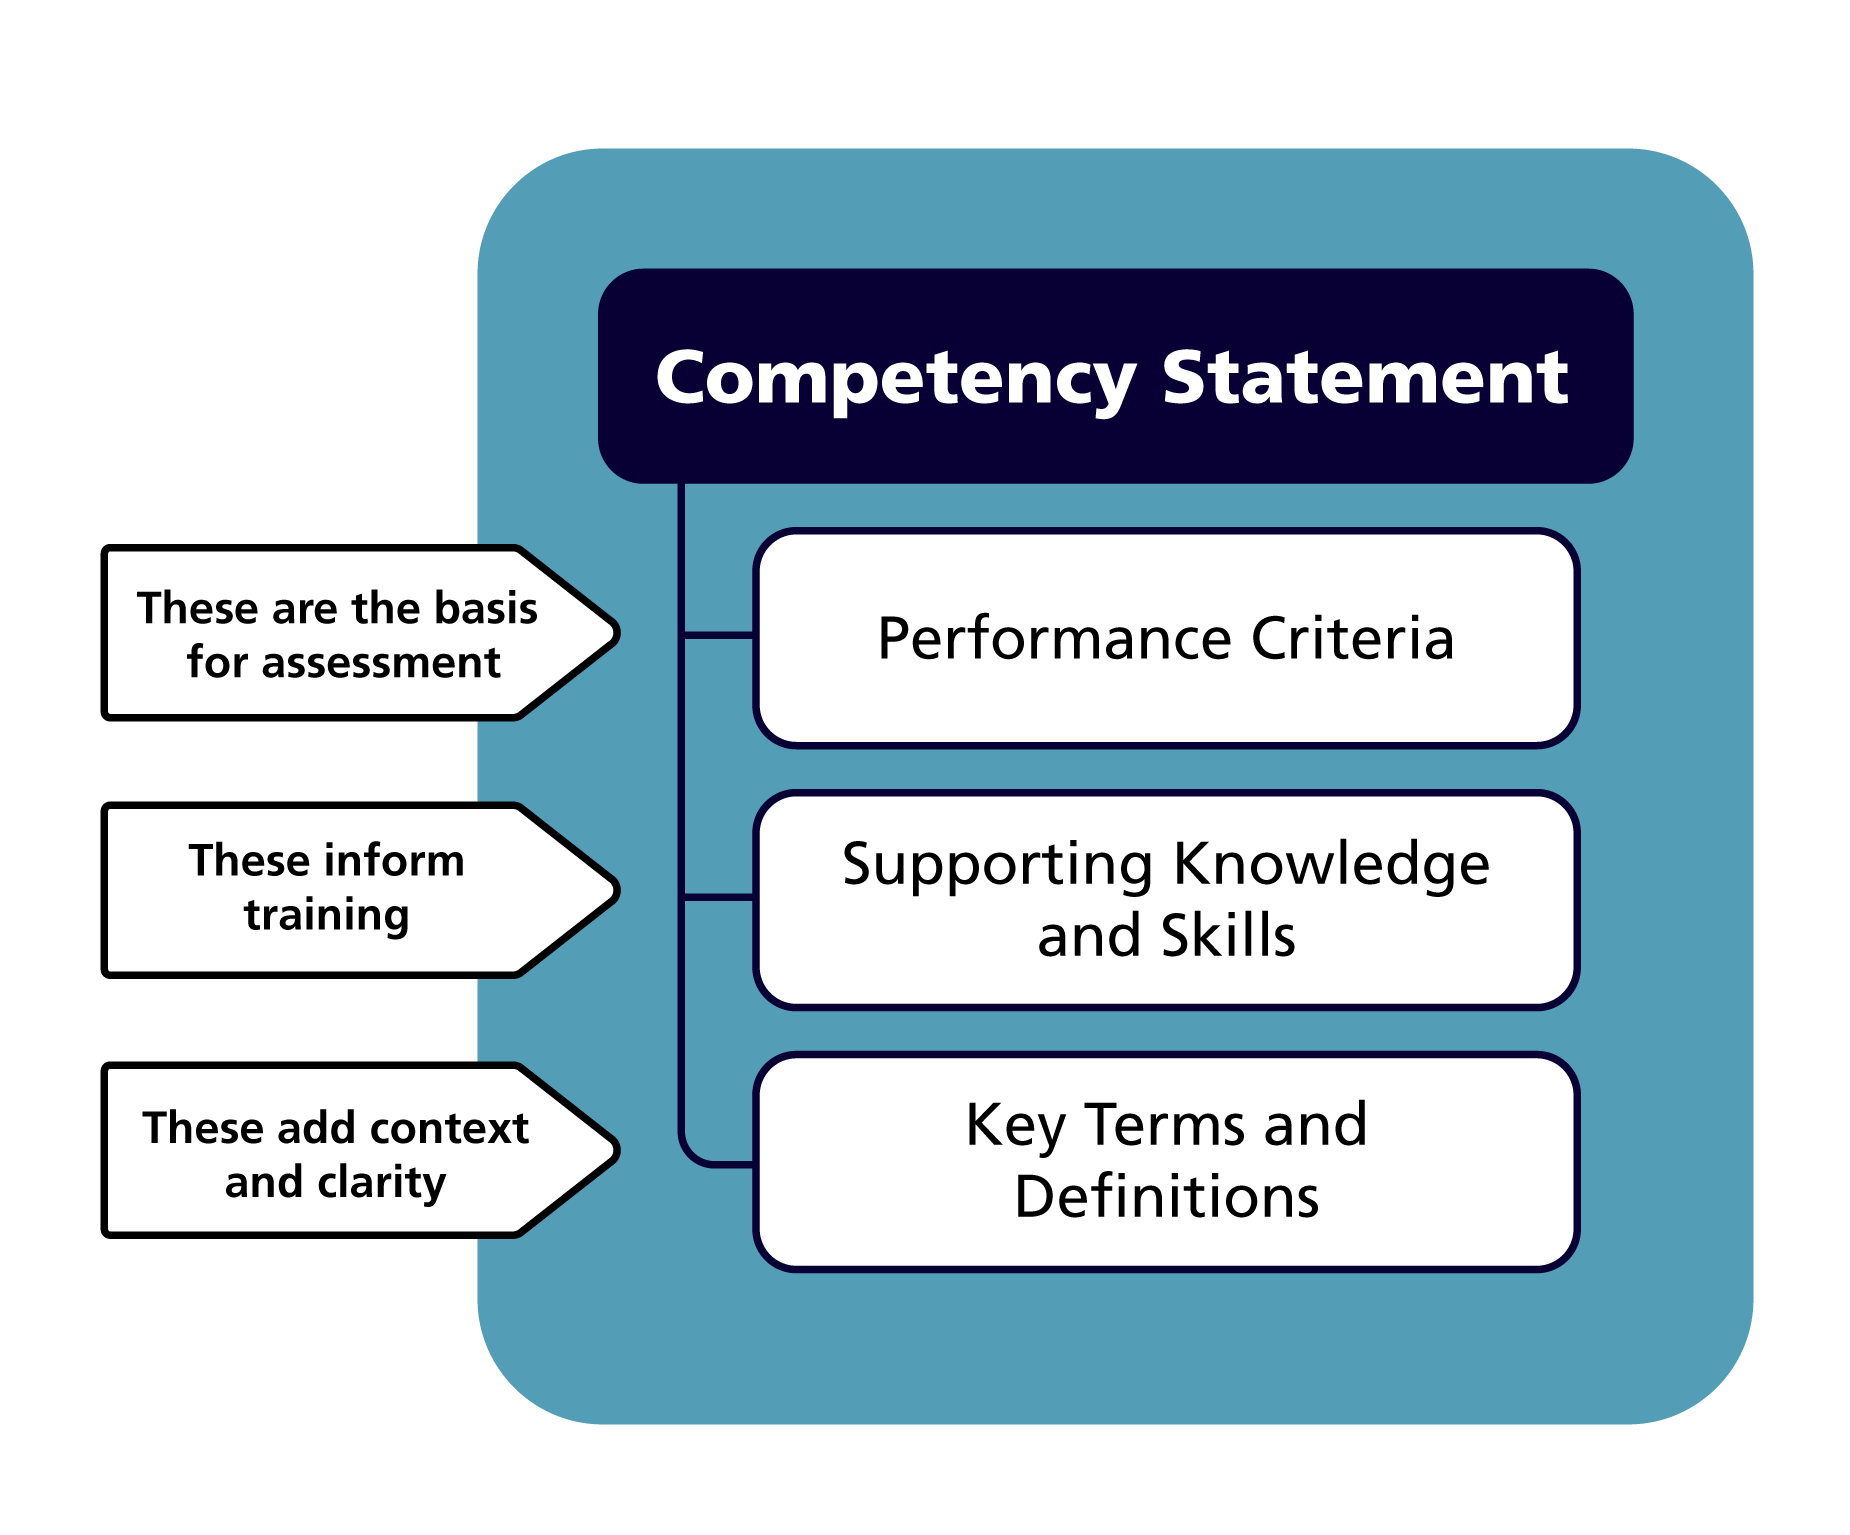 Components of a competency